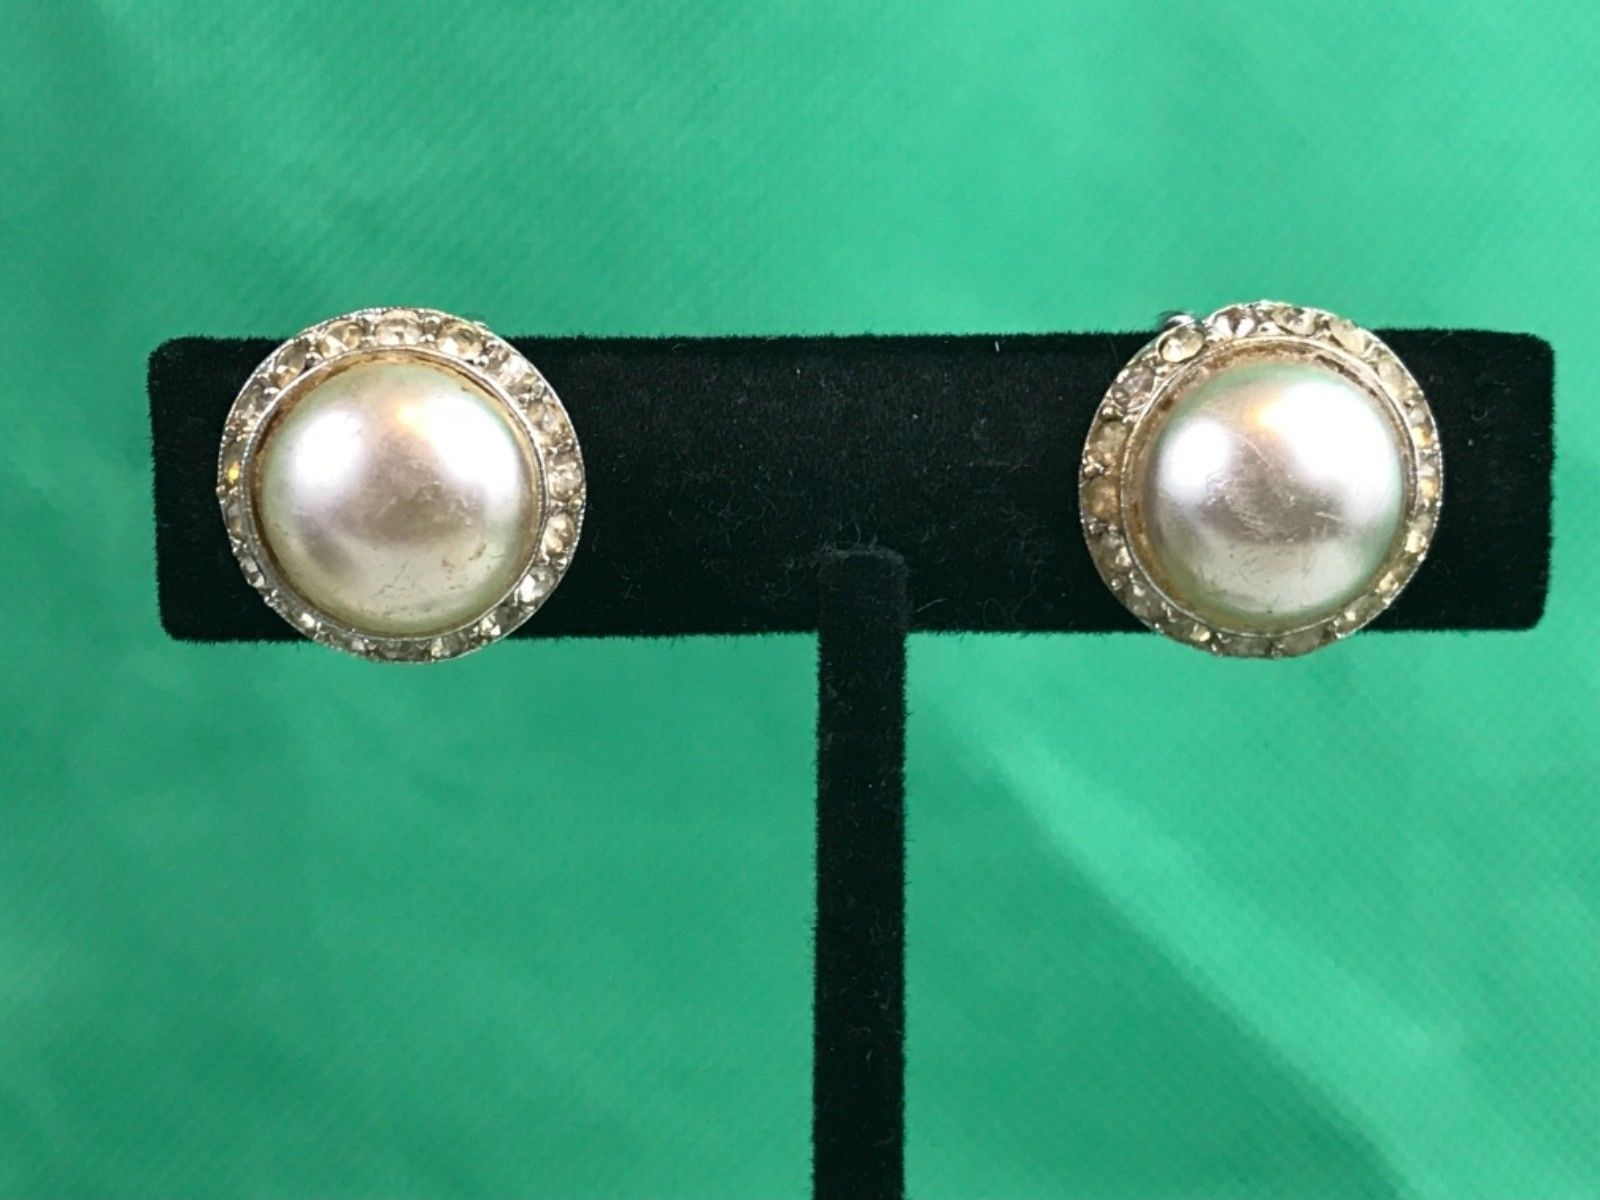 Primary image for Vintage Imitation Pearl Center Rhinestone Clip On Earrings Collectible Gift